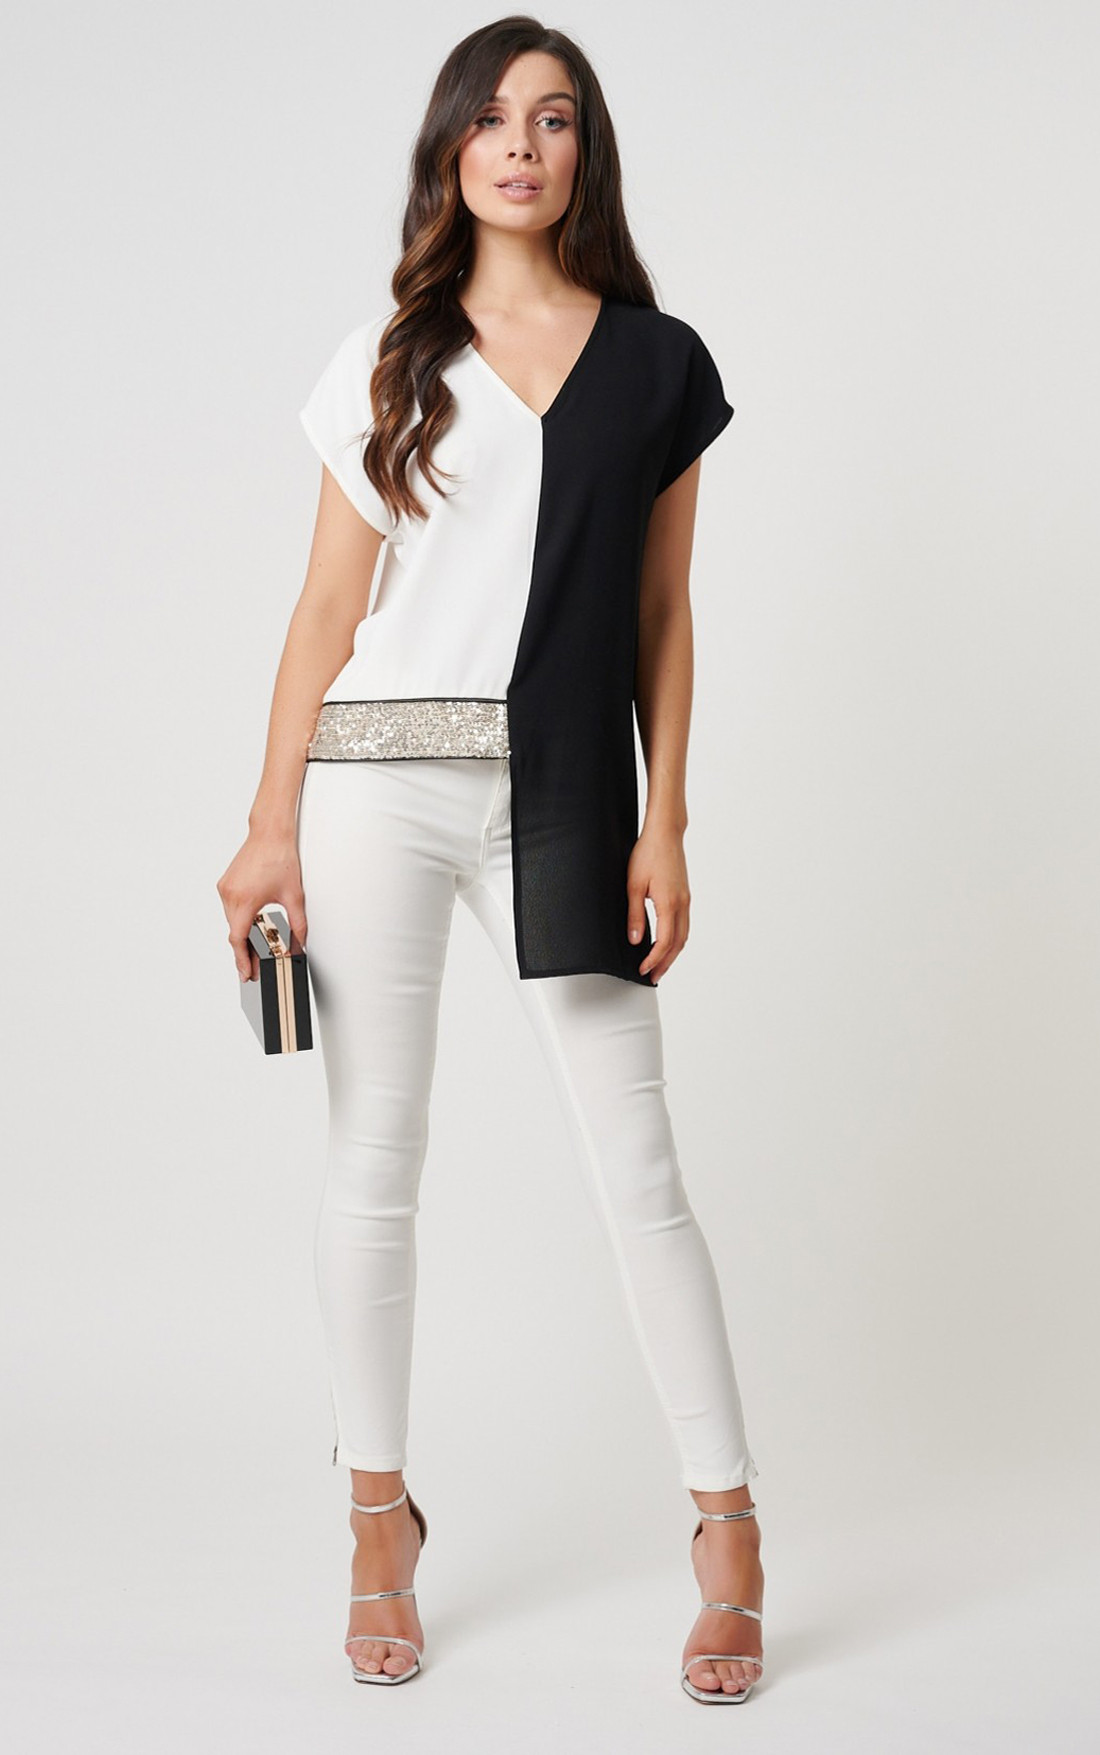 Forever Unique - Carey Monochrome Split Detail Top With Sequin Embellishments (MN209749)